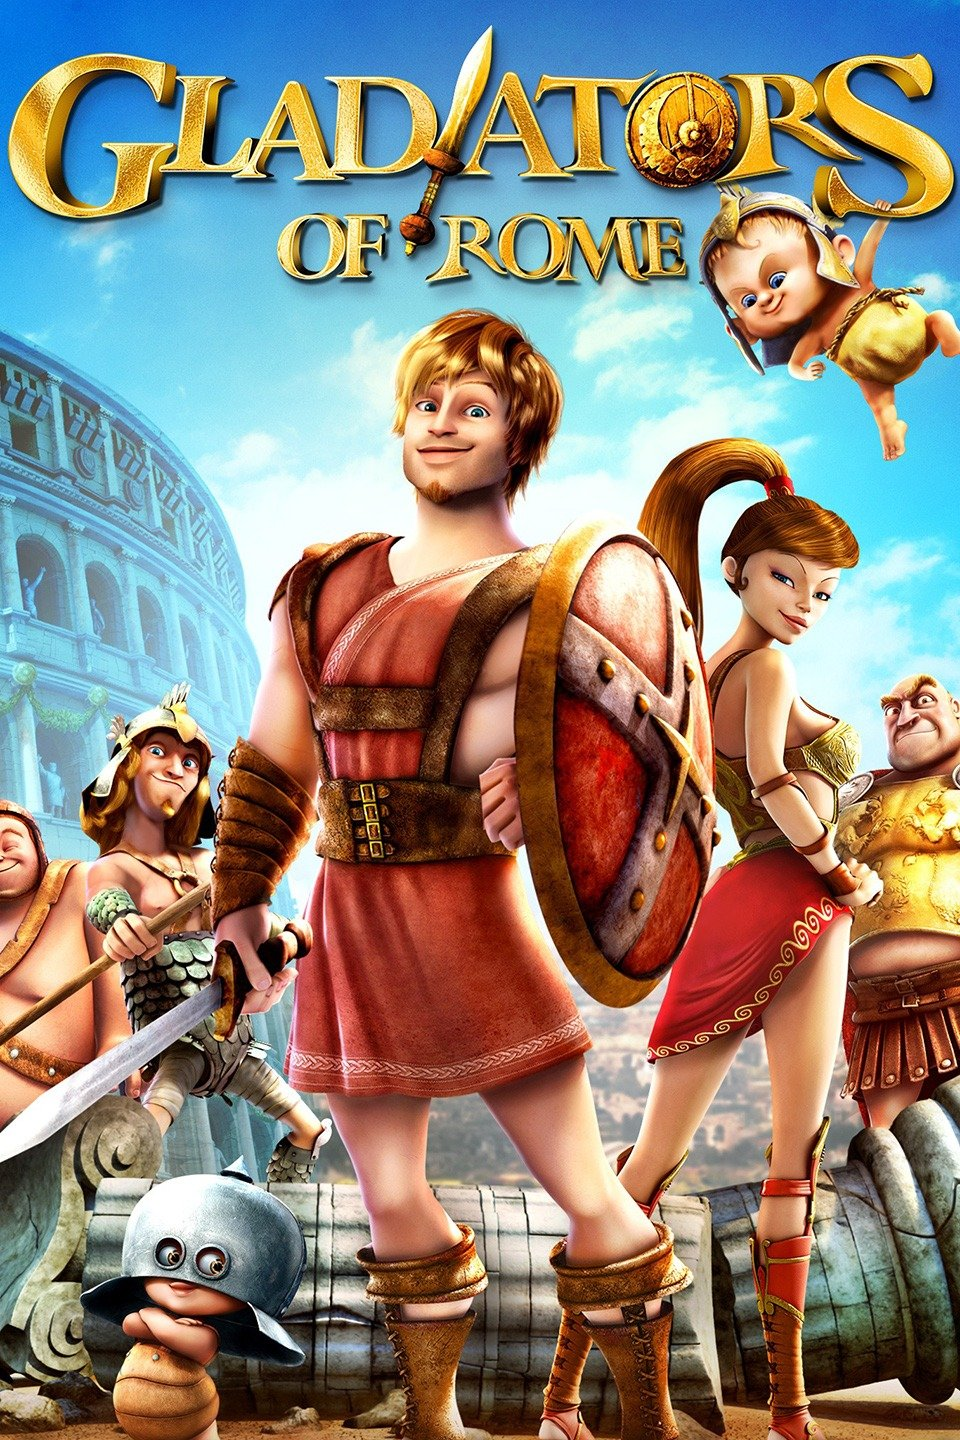 Gladiators of Rome-Gladiatori di Roma